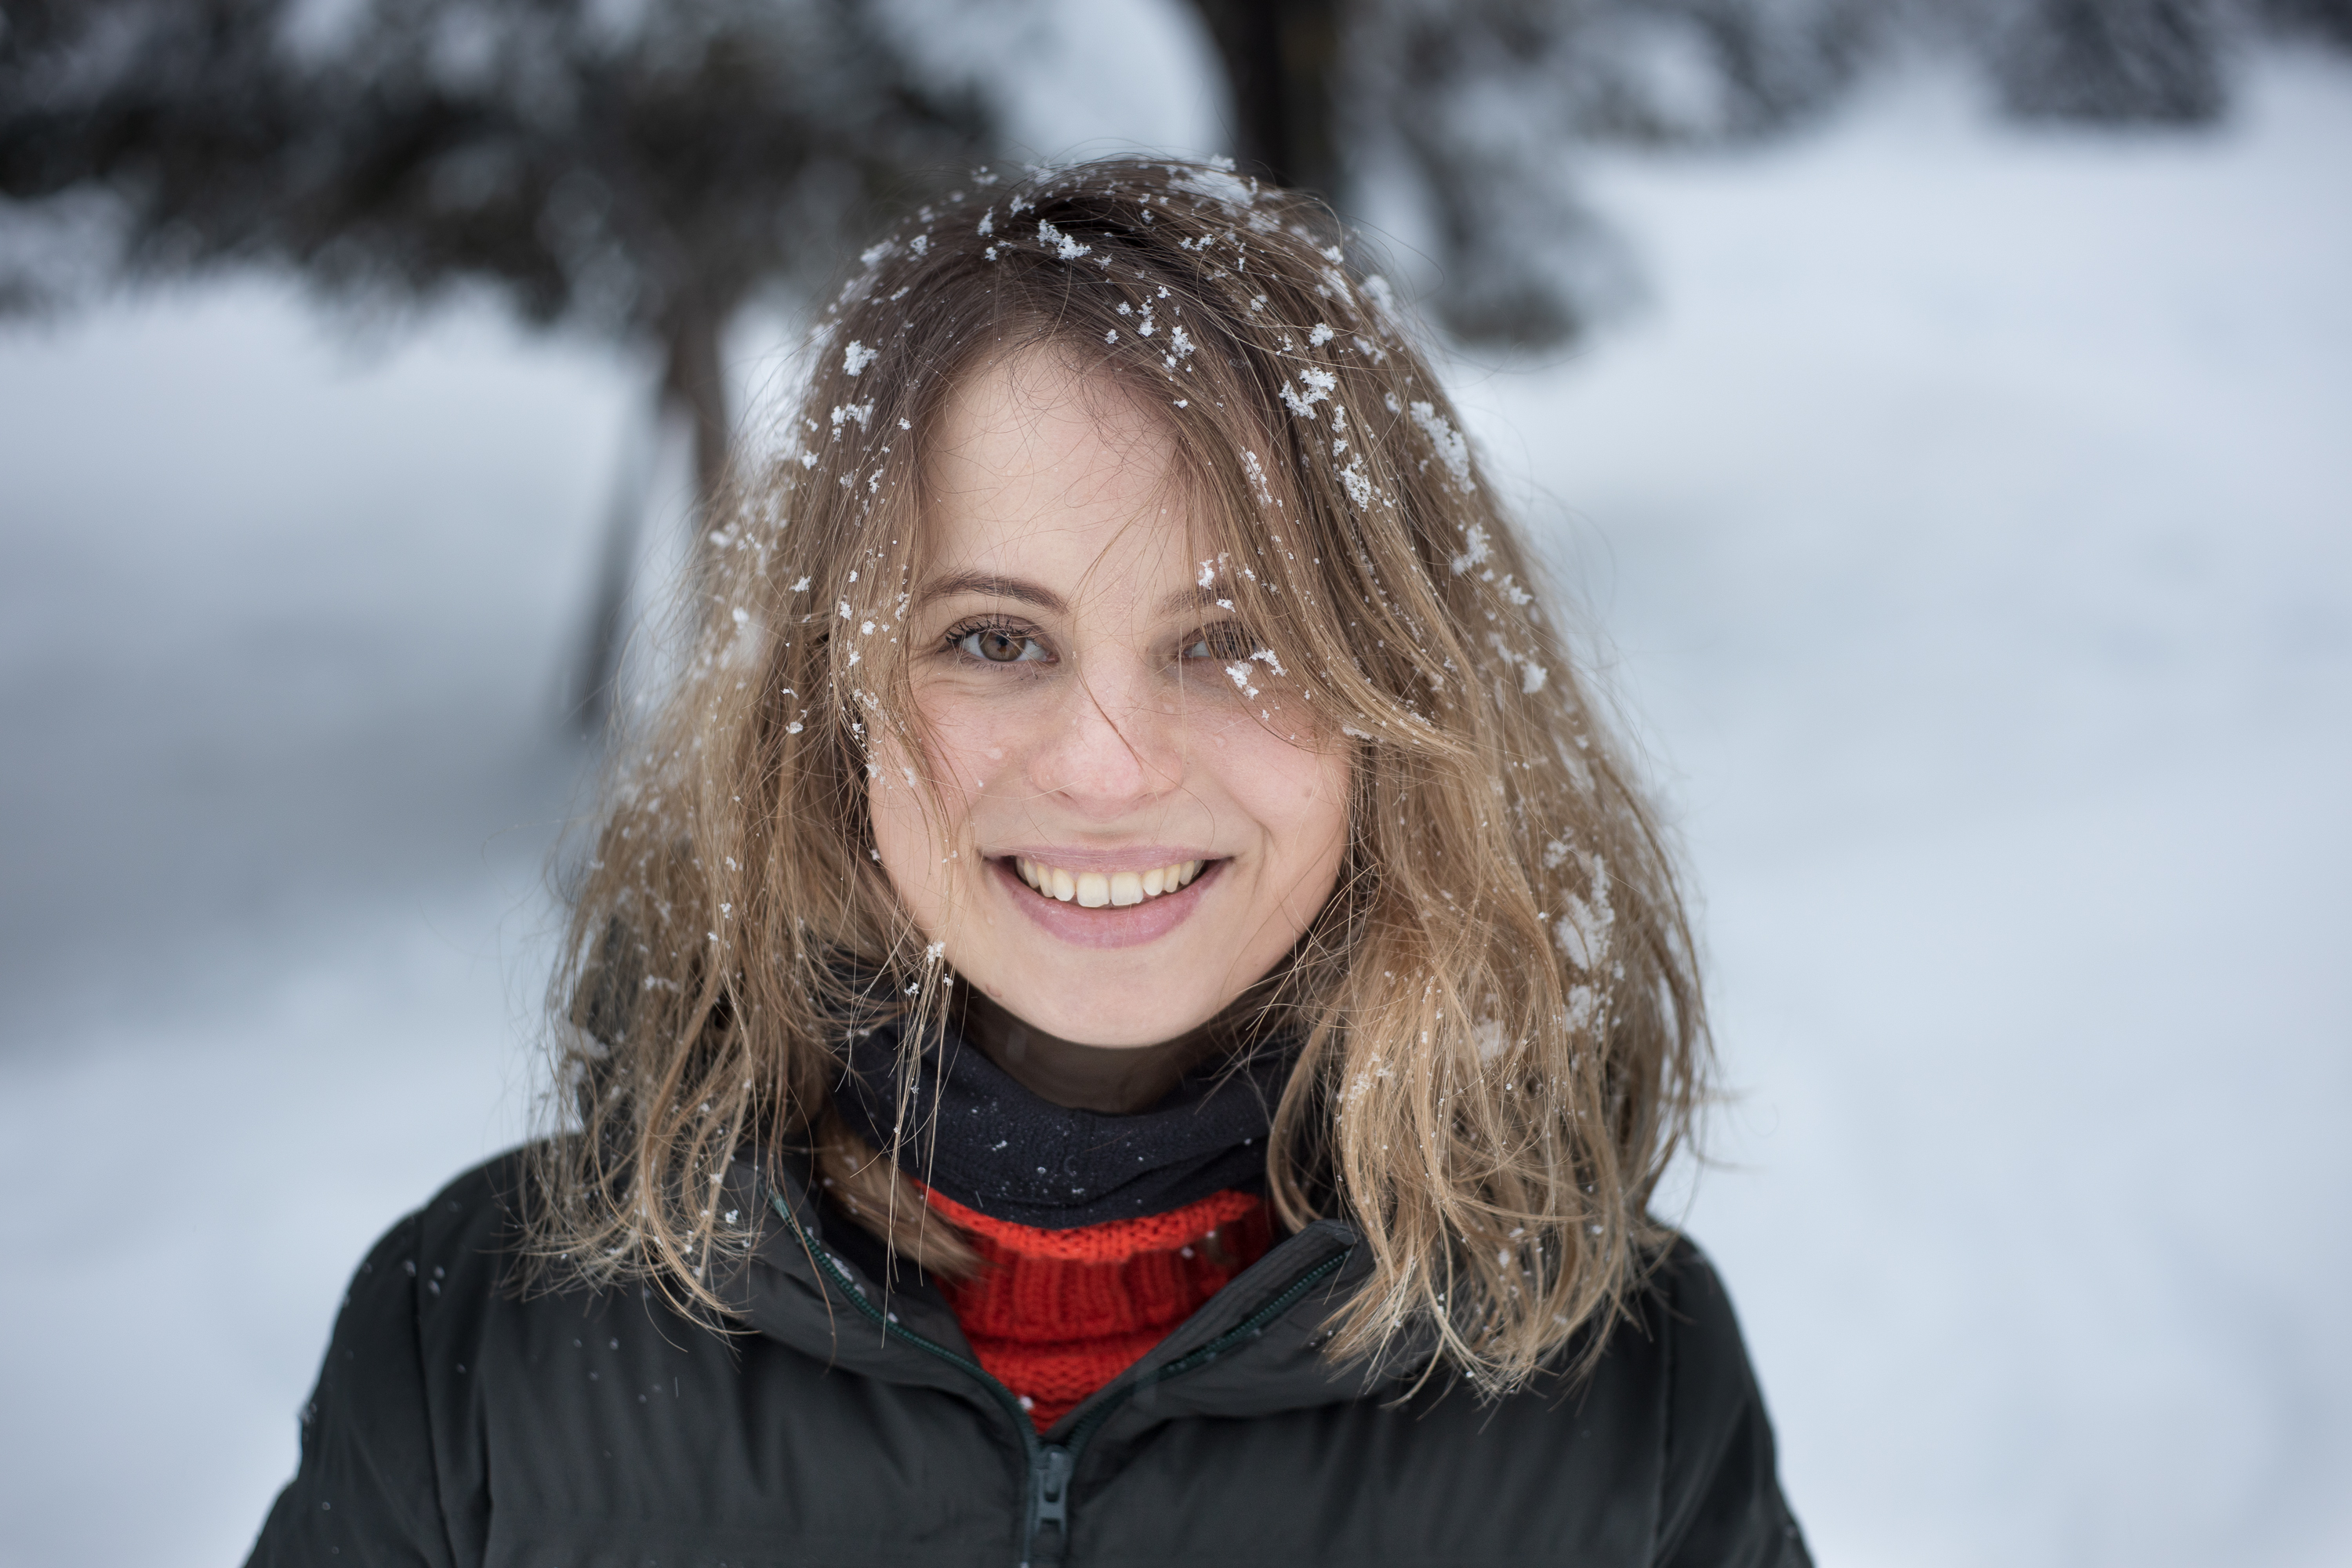 Girl with snow in the hair